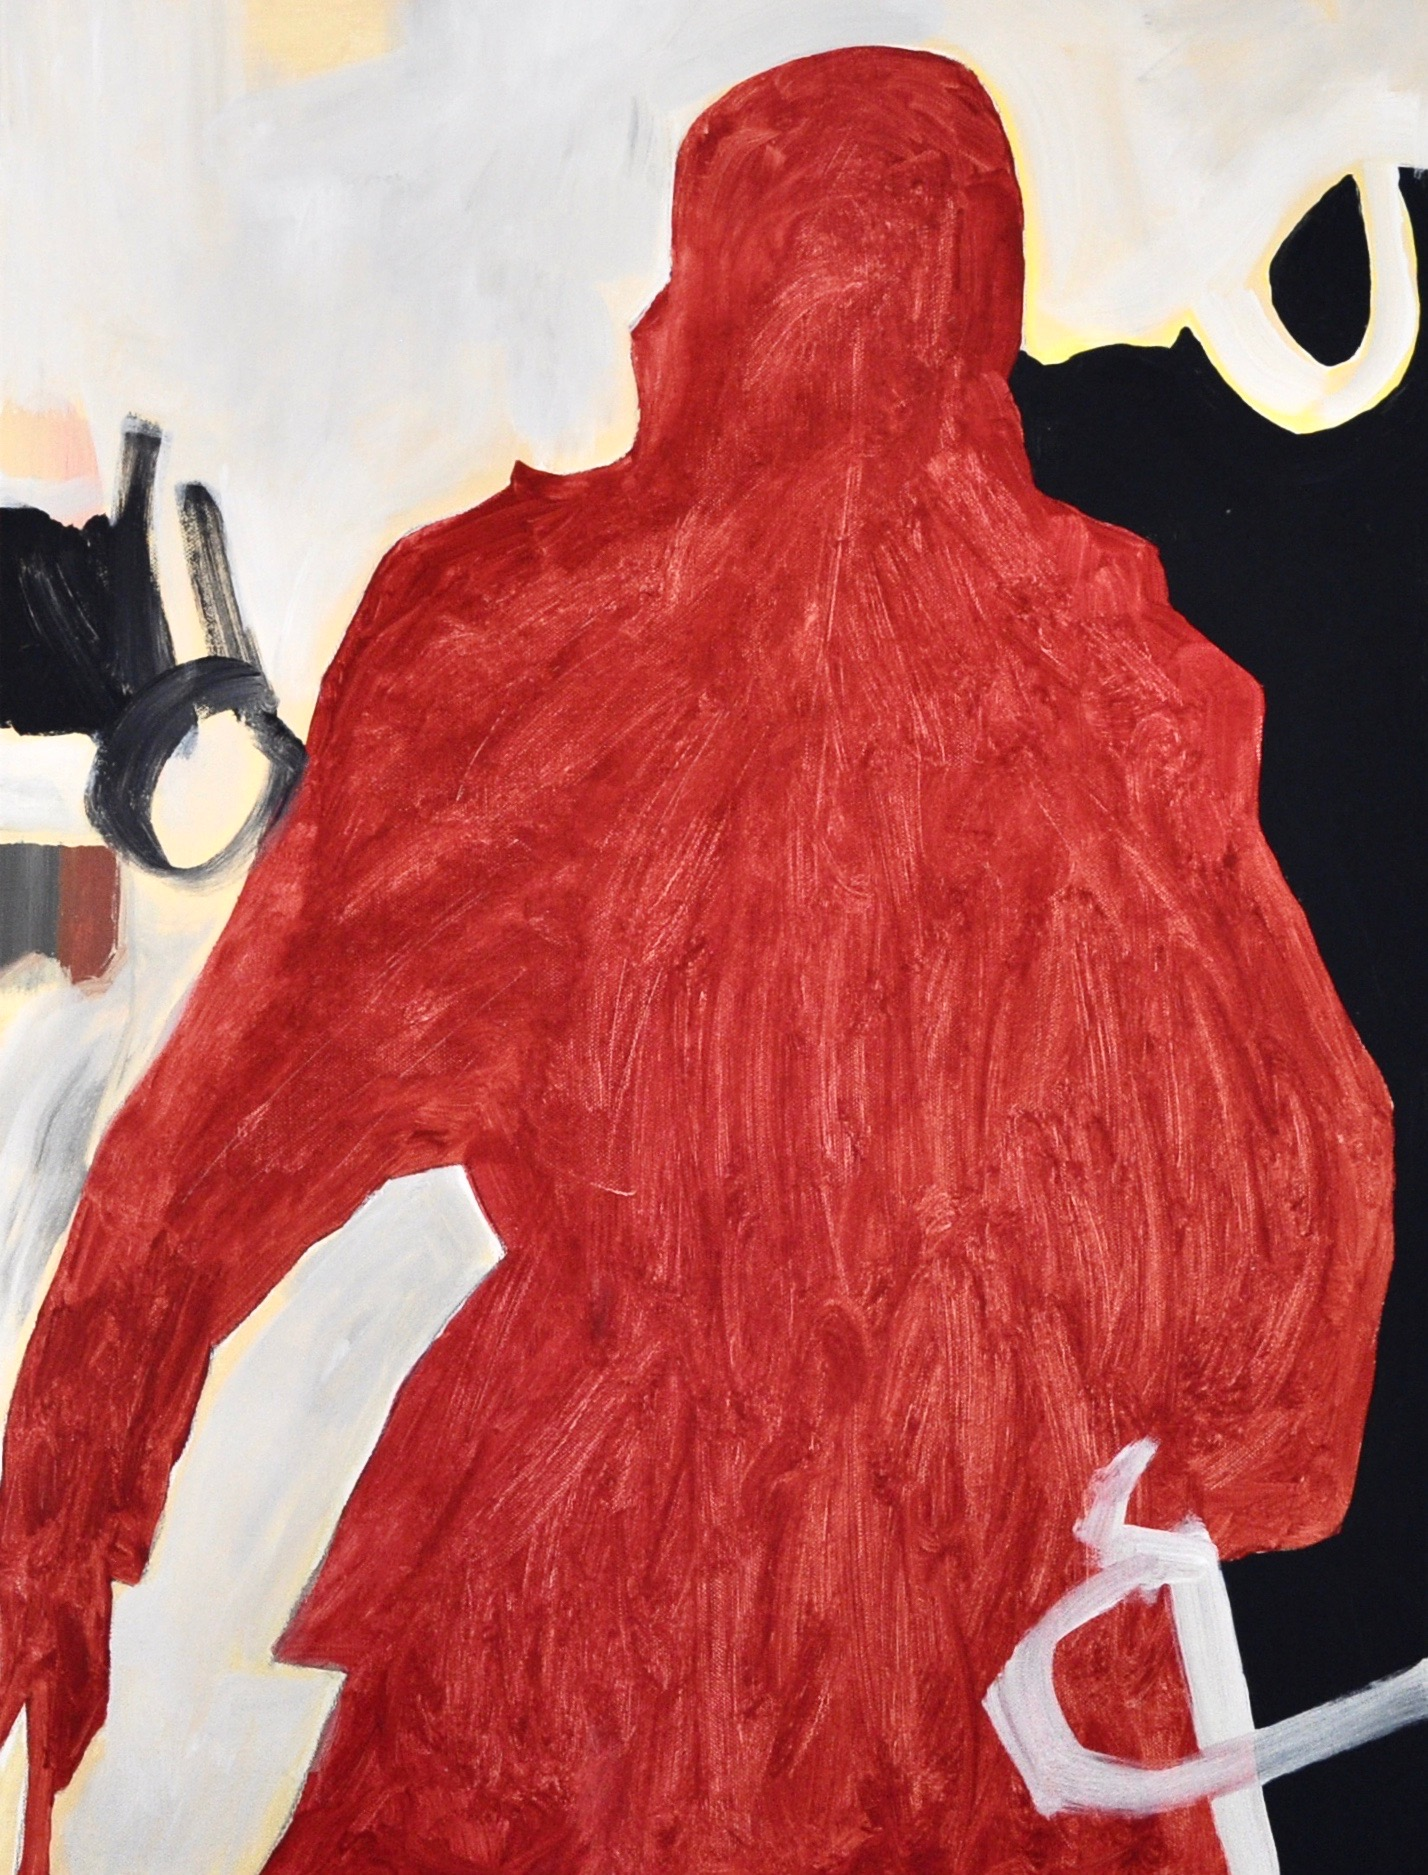 Untitled Red Figure (2017)